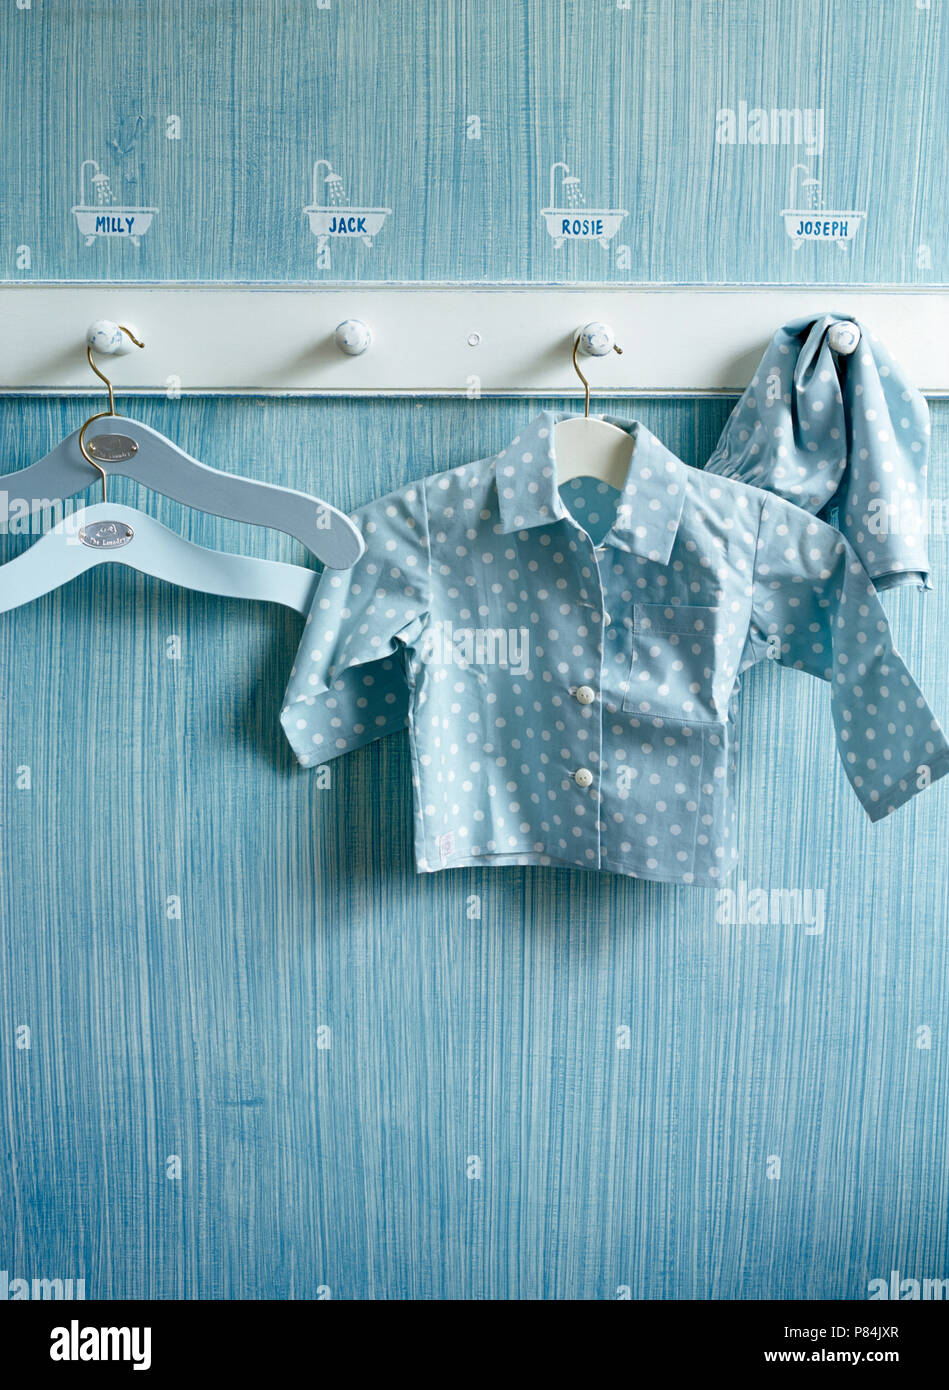 Close-up of a pegboard with a pair of children's pyjamas on a wall with a combing paint effect and stenciled children's names - Stock Image